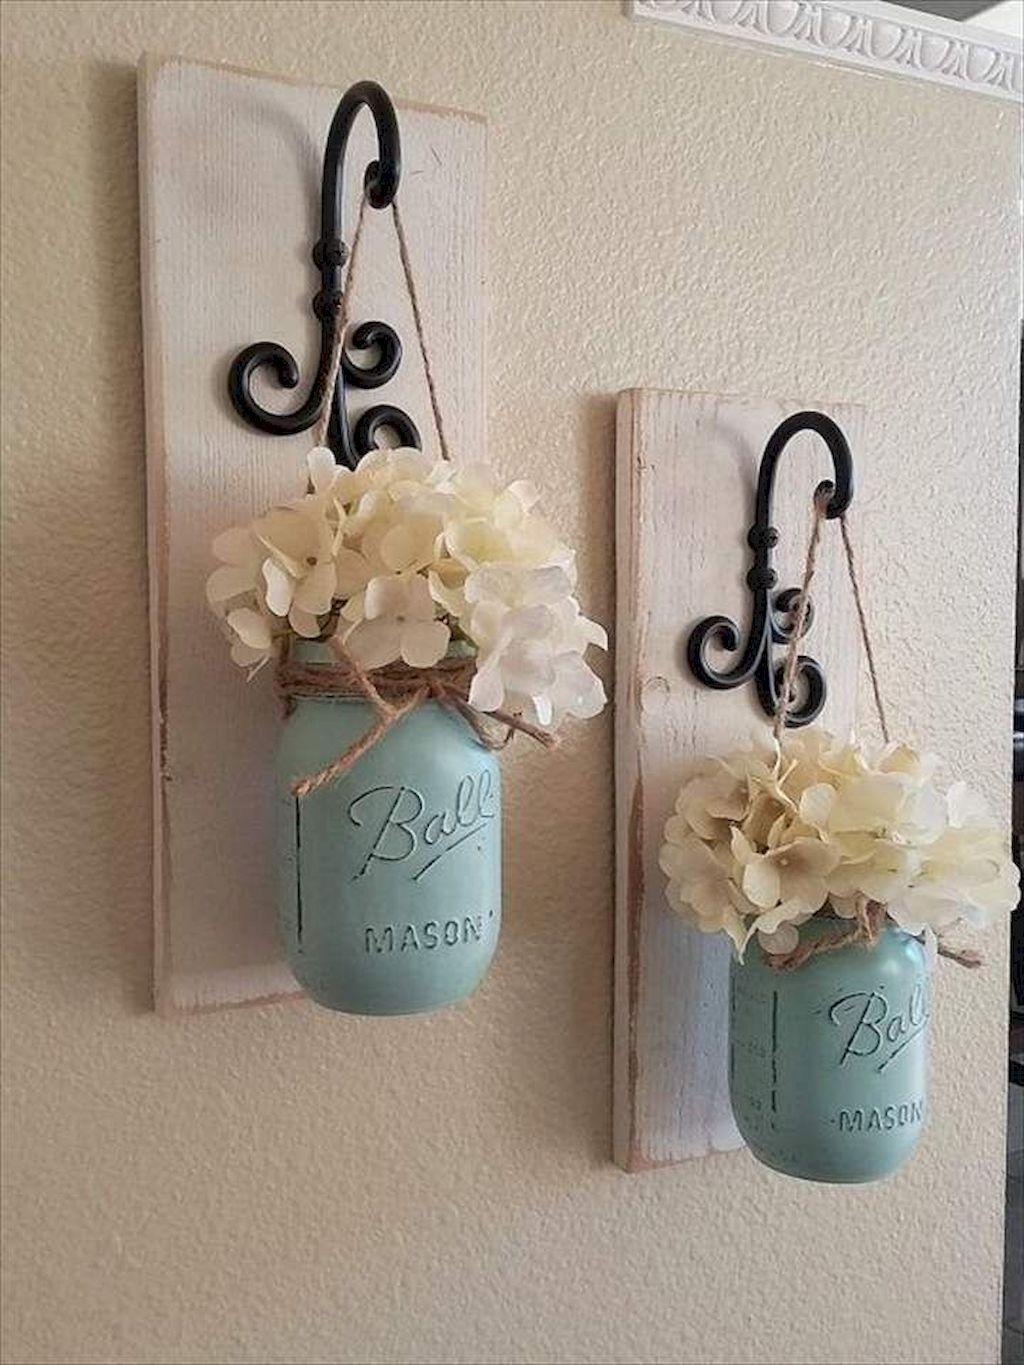 30 Simply DIY Crafts Ideas For The Home images